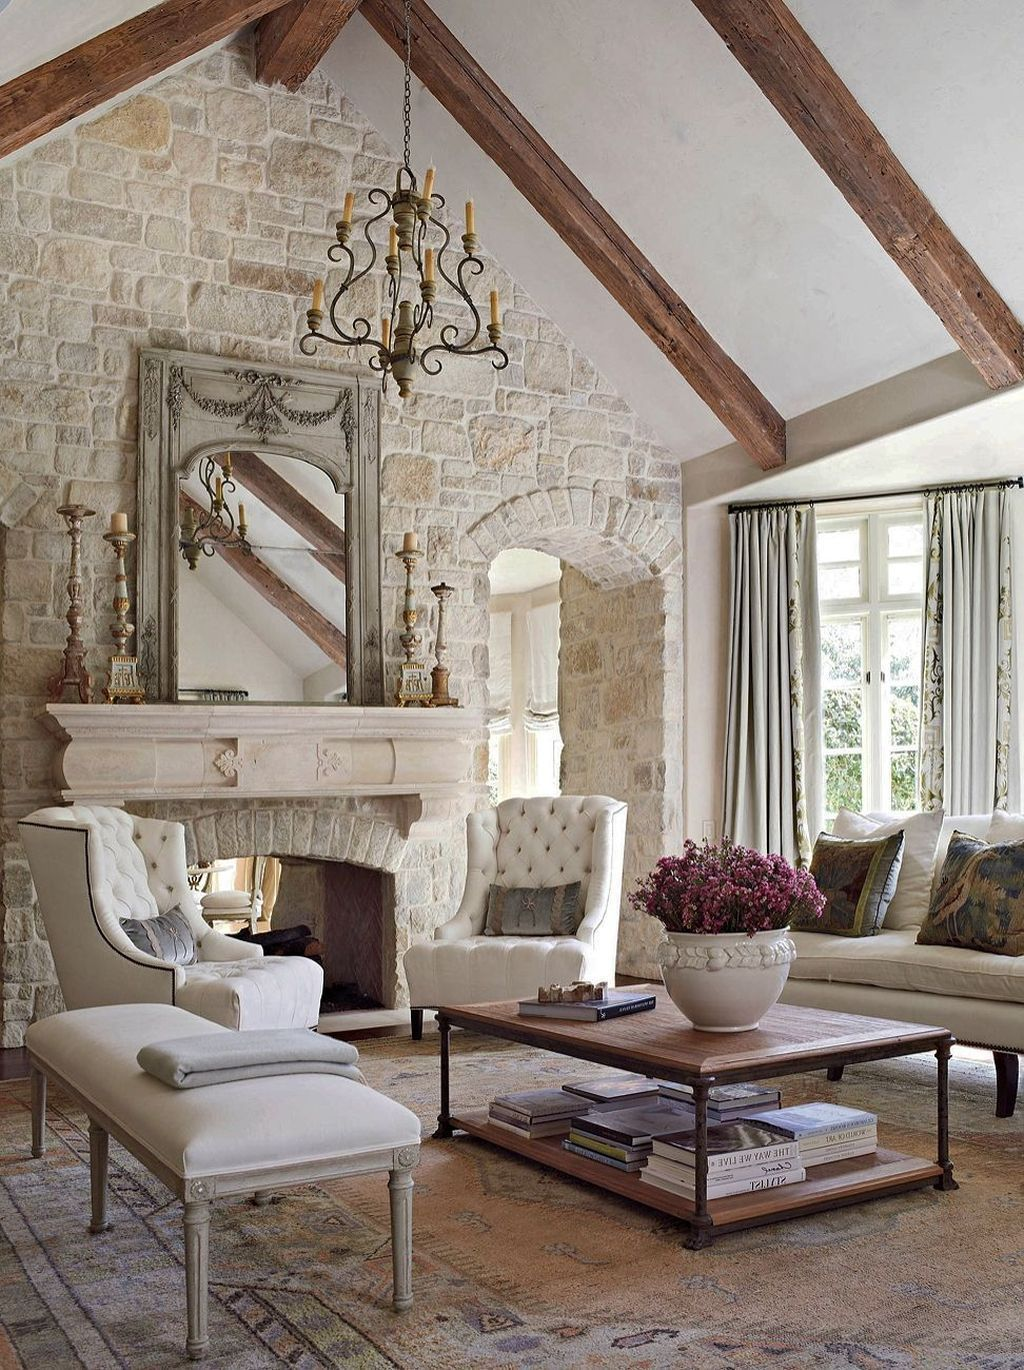 30 Stunning French Home Decor Ideas That You Definitely Like Homyhomee Country Style Living Room French Country Decorating Living Room French Country Living Room